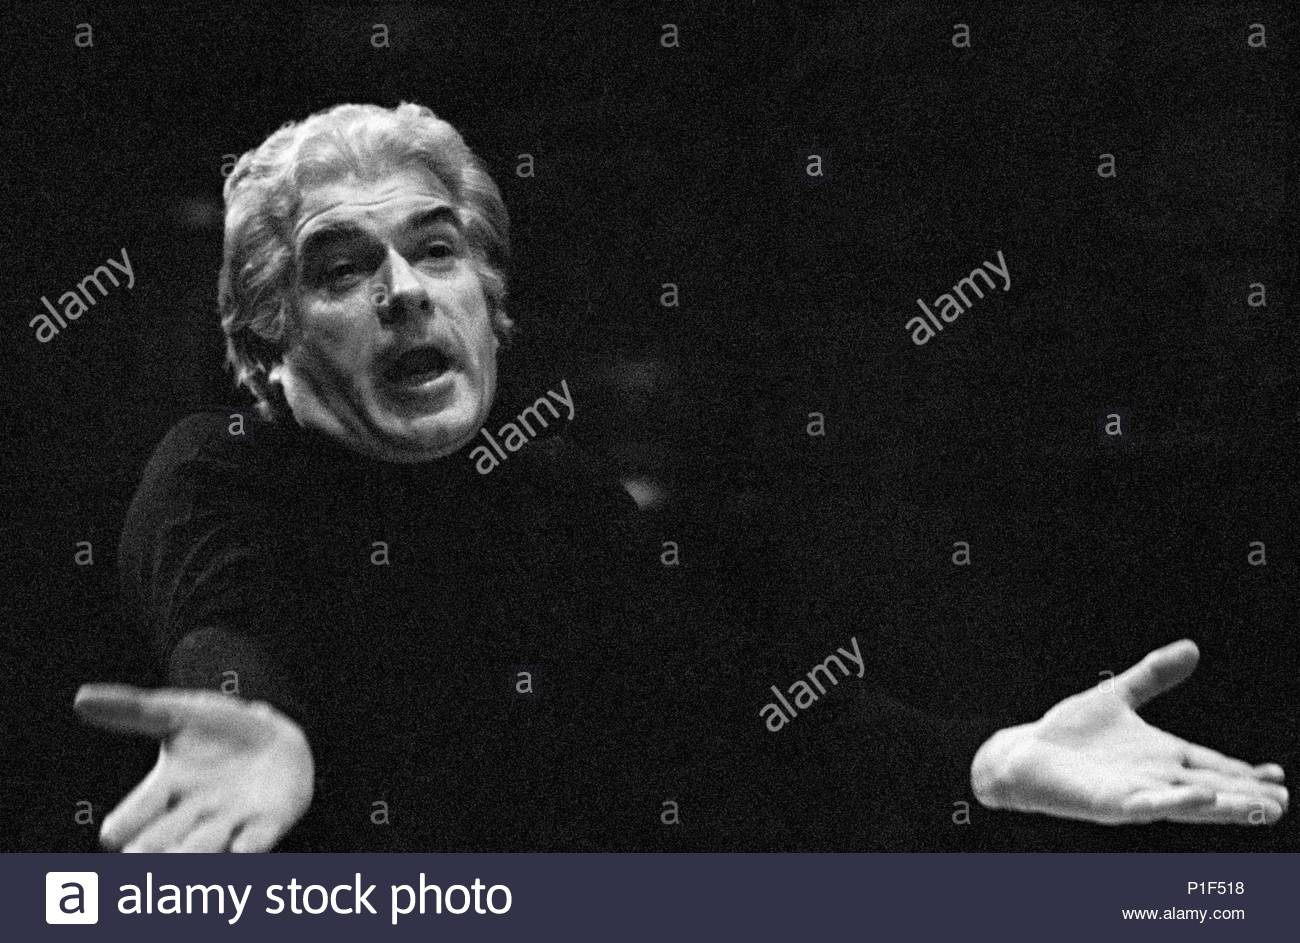 The Paris Opera in the Palais Garnier reopened in 1973 under its new director Rolf Liebermann. Giorgio Strehler directed the premiere of Mozart's Marriage of Figaro, Paris Opera,1973. Location: Operahouse Palais Garnier, Paris, France. - Stock Image